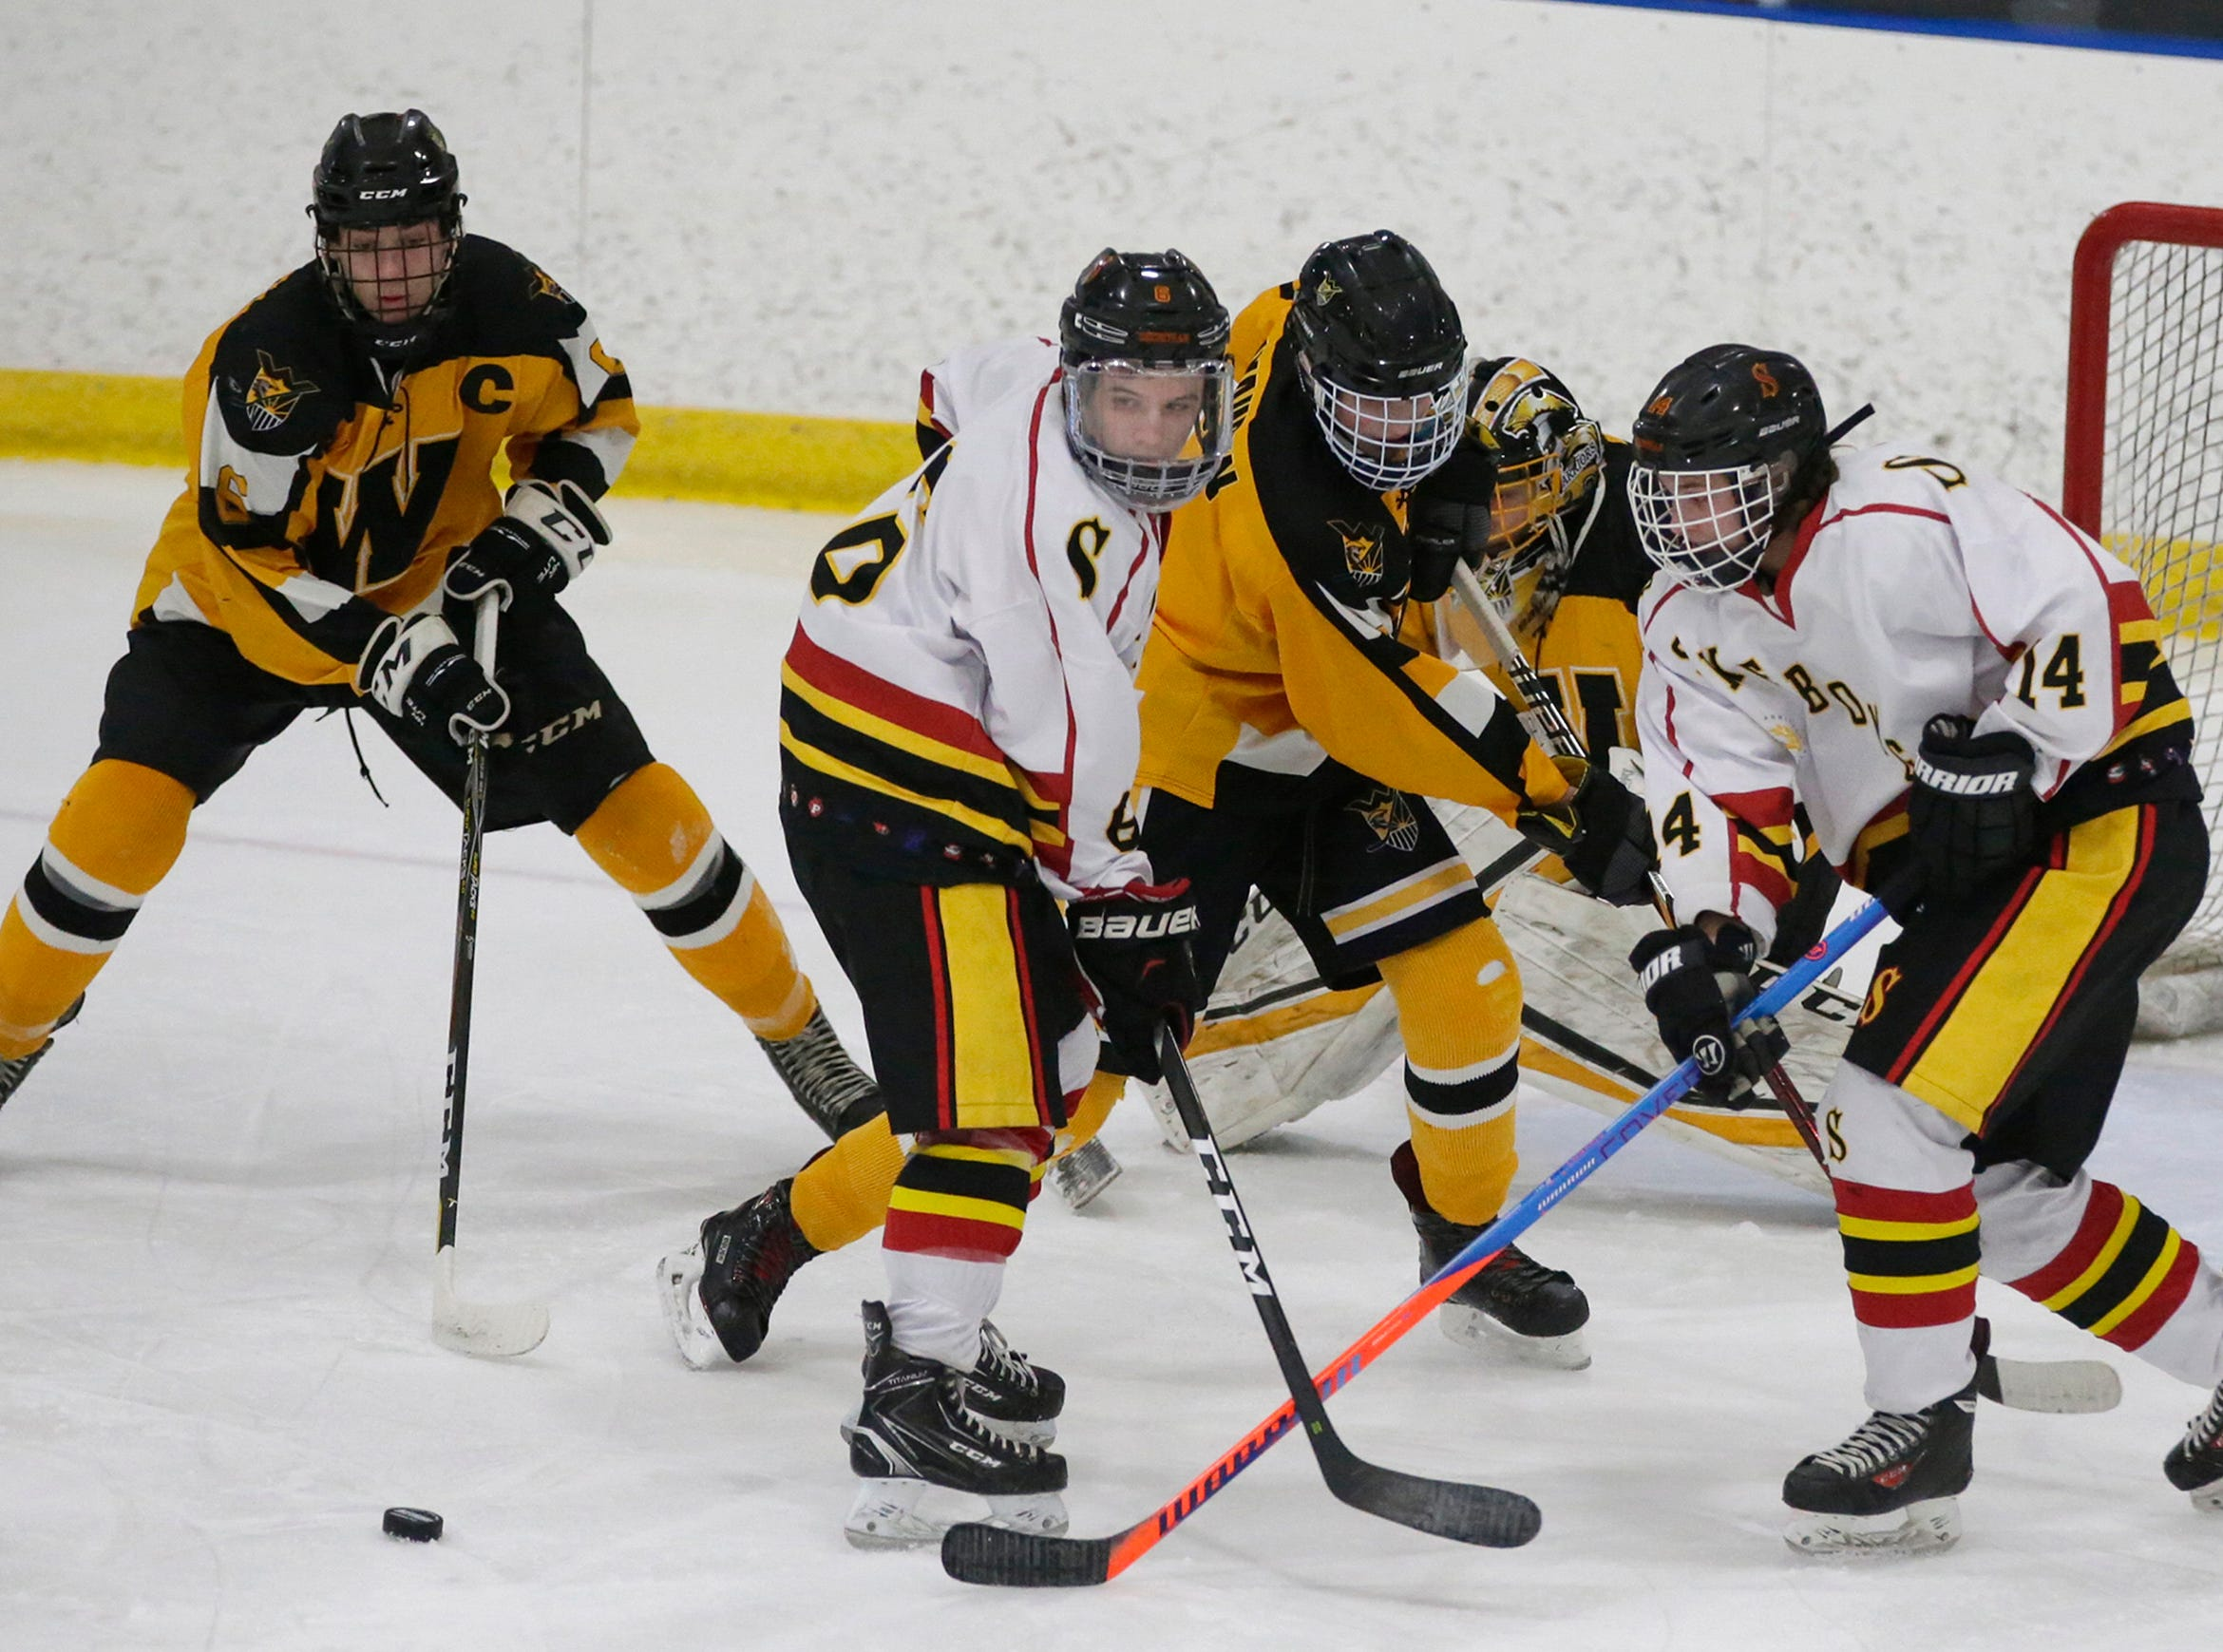 The puck was the center of attraction during the Waupun at Sheboygan Red Raiders games, Wednesday, February 13, 2019, in Sheboygan, Wis.